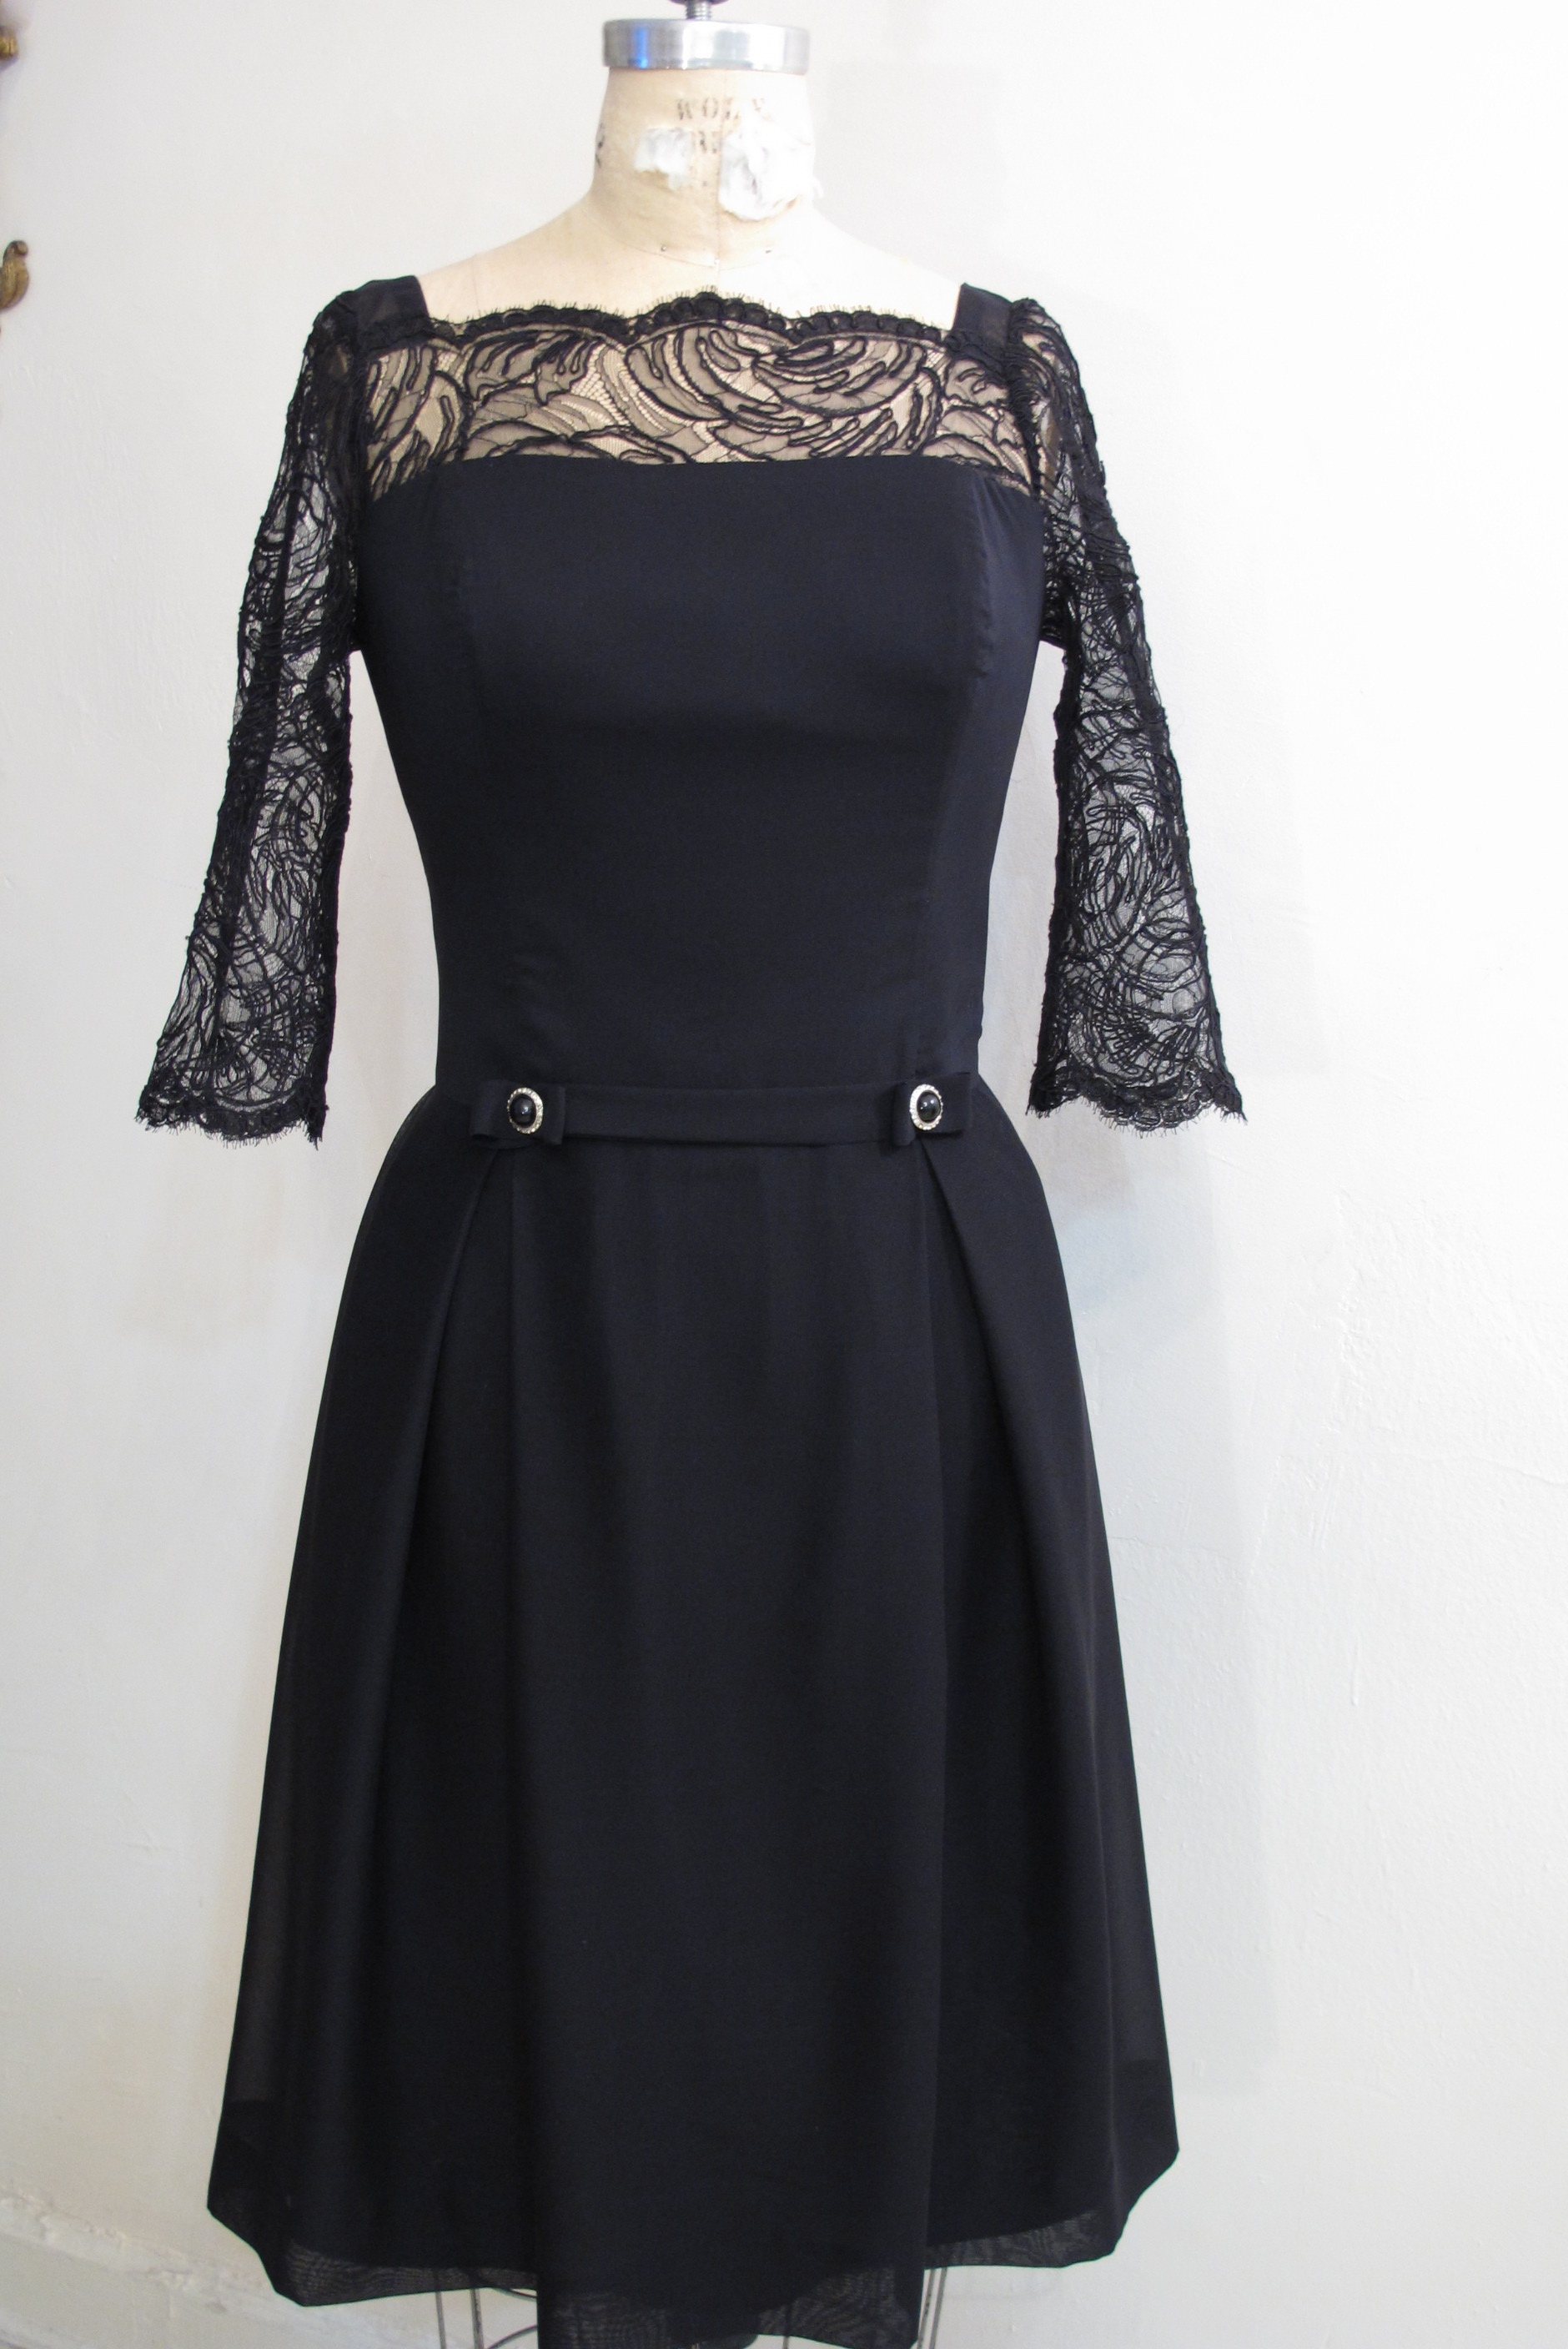 Silk Georgette w/ lycra dress with lace sleeves - for client